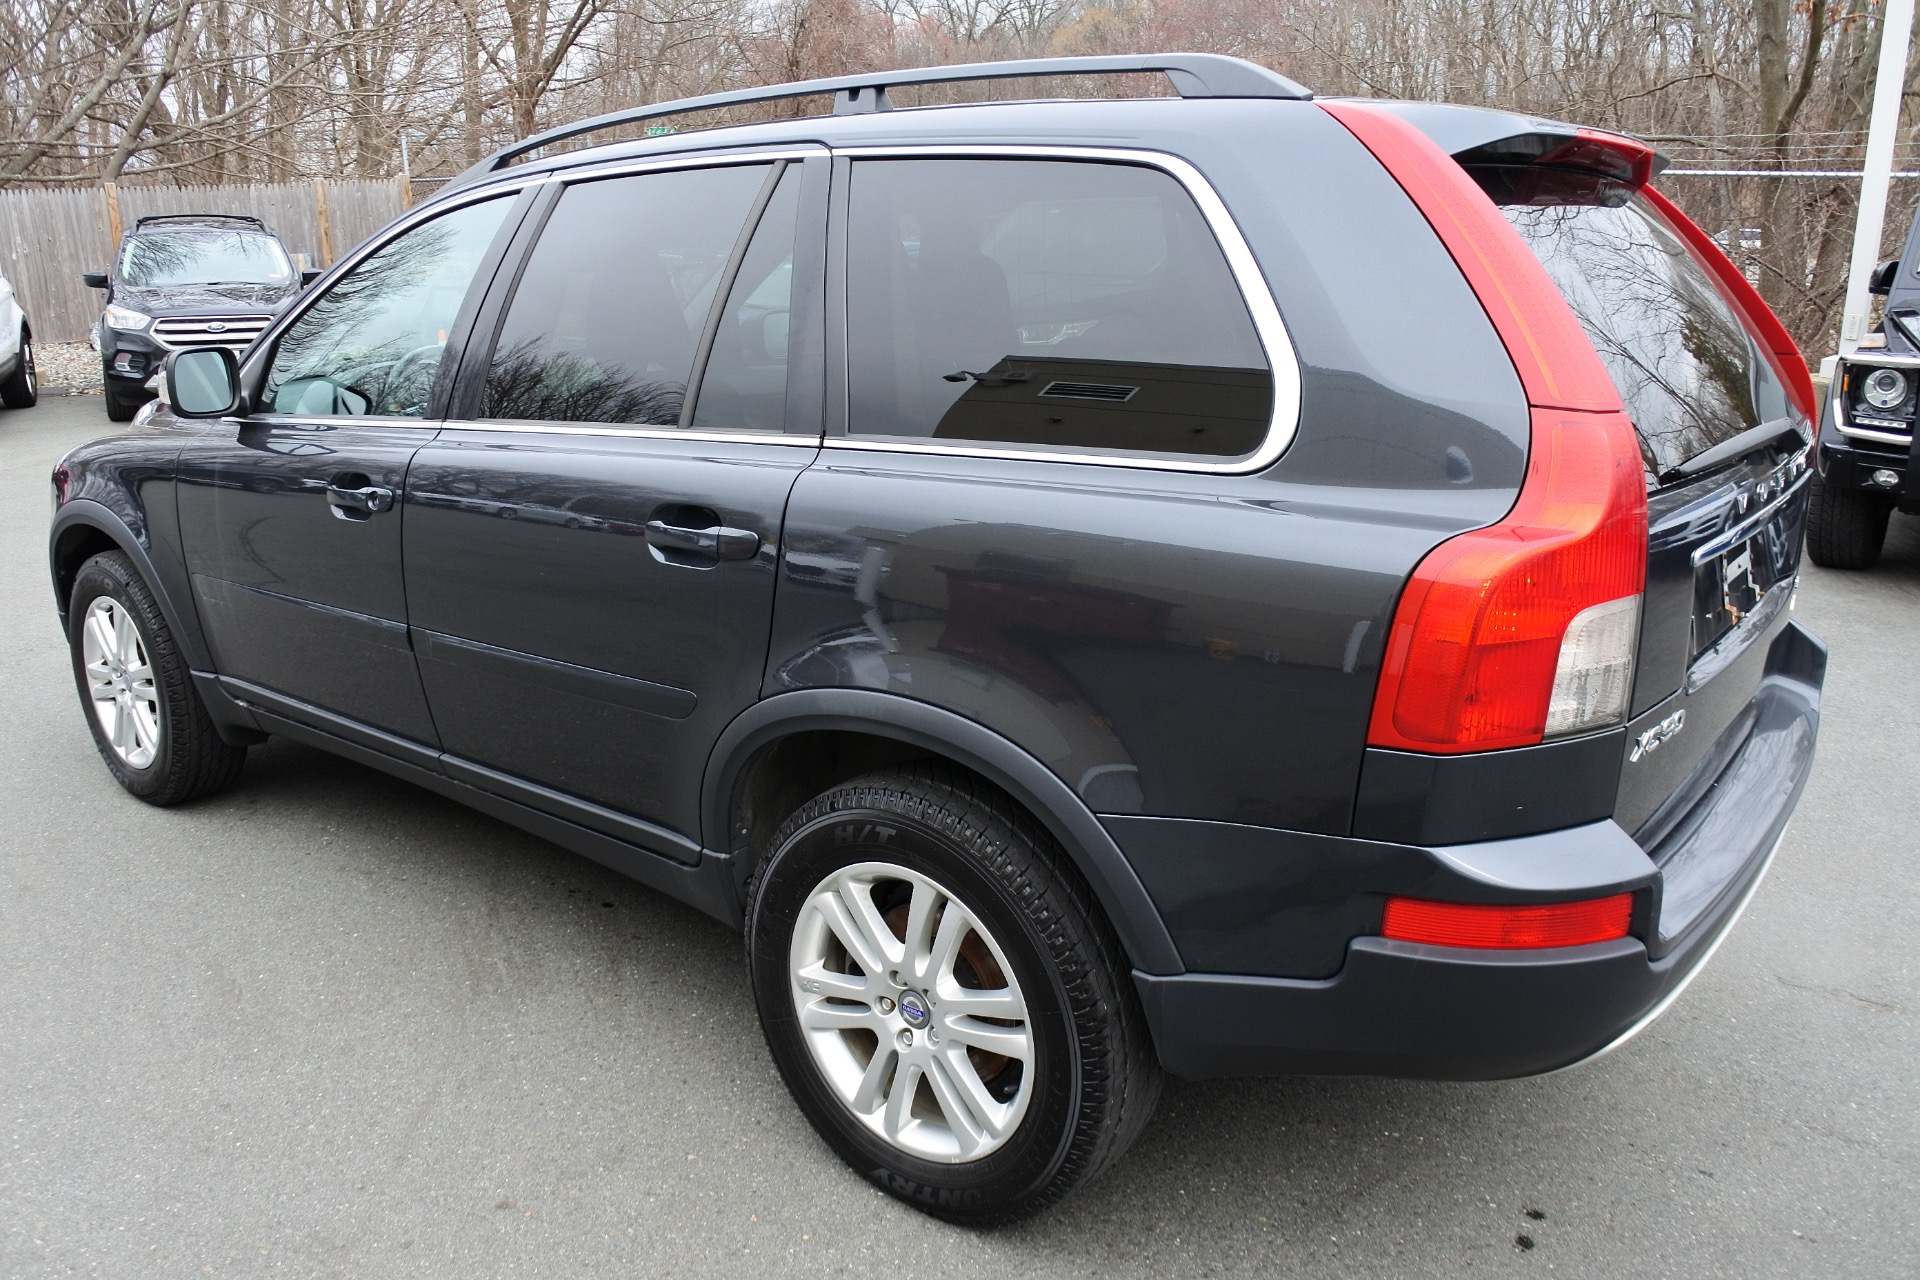 Used 2009 Volvo Xc90 AWD 4dr I6 w/Sunroof Used 2009 Volvo Xc90 AWD 4dr I6 w/Sunroof for sale  at Metro West Motorcars LLC in Shrewsbury MA 3